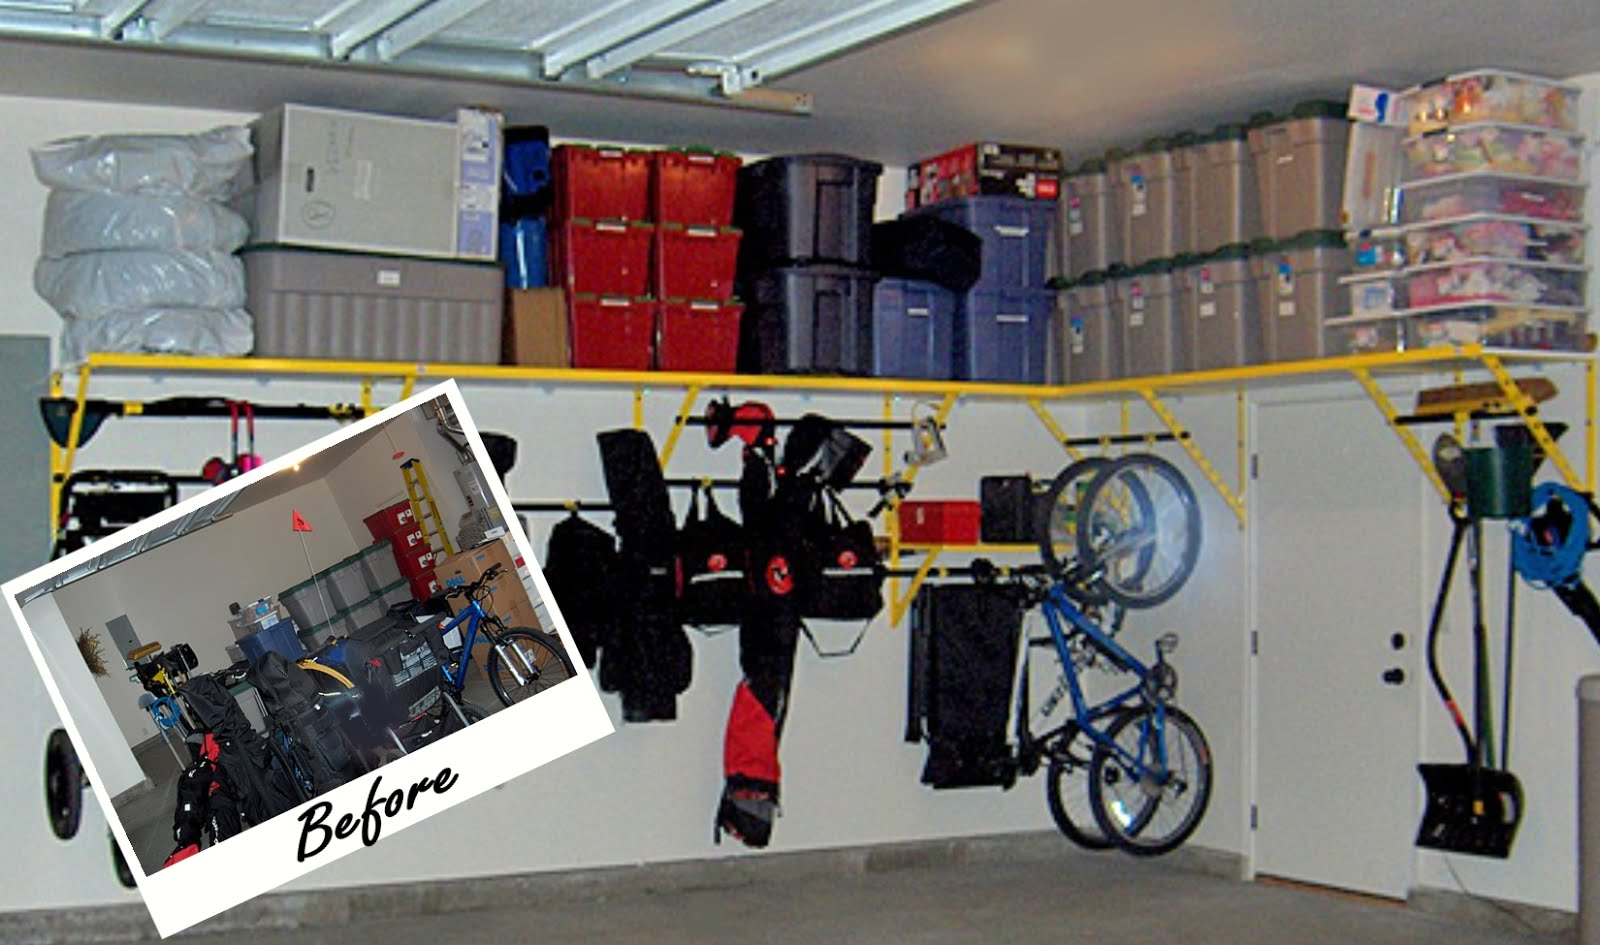 https www.containerstore.com tip roomgarage garage-shelving-ideas - Chattanooga Garage Storage Organization Tips & Tech